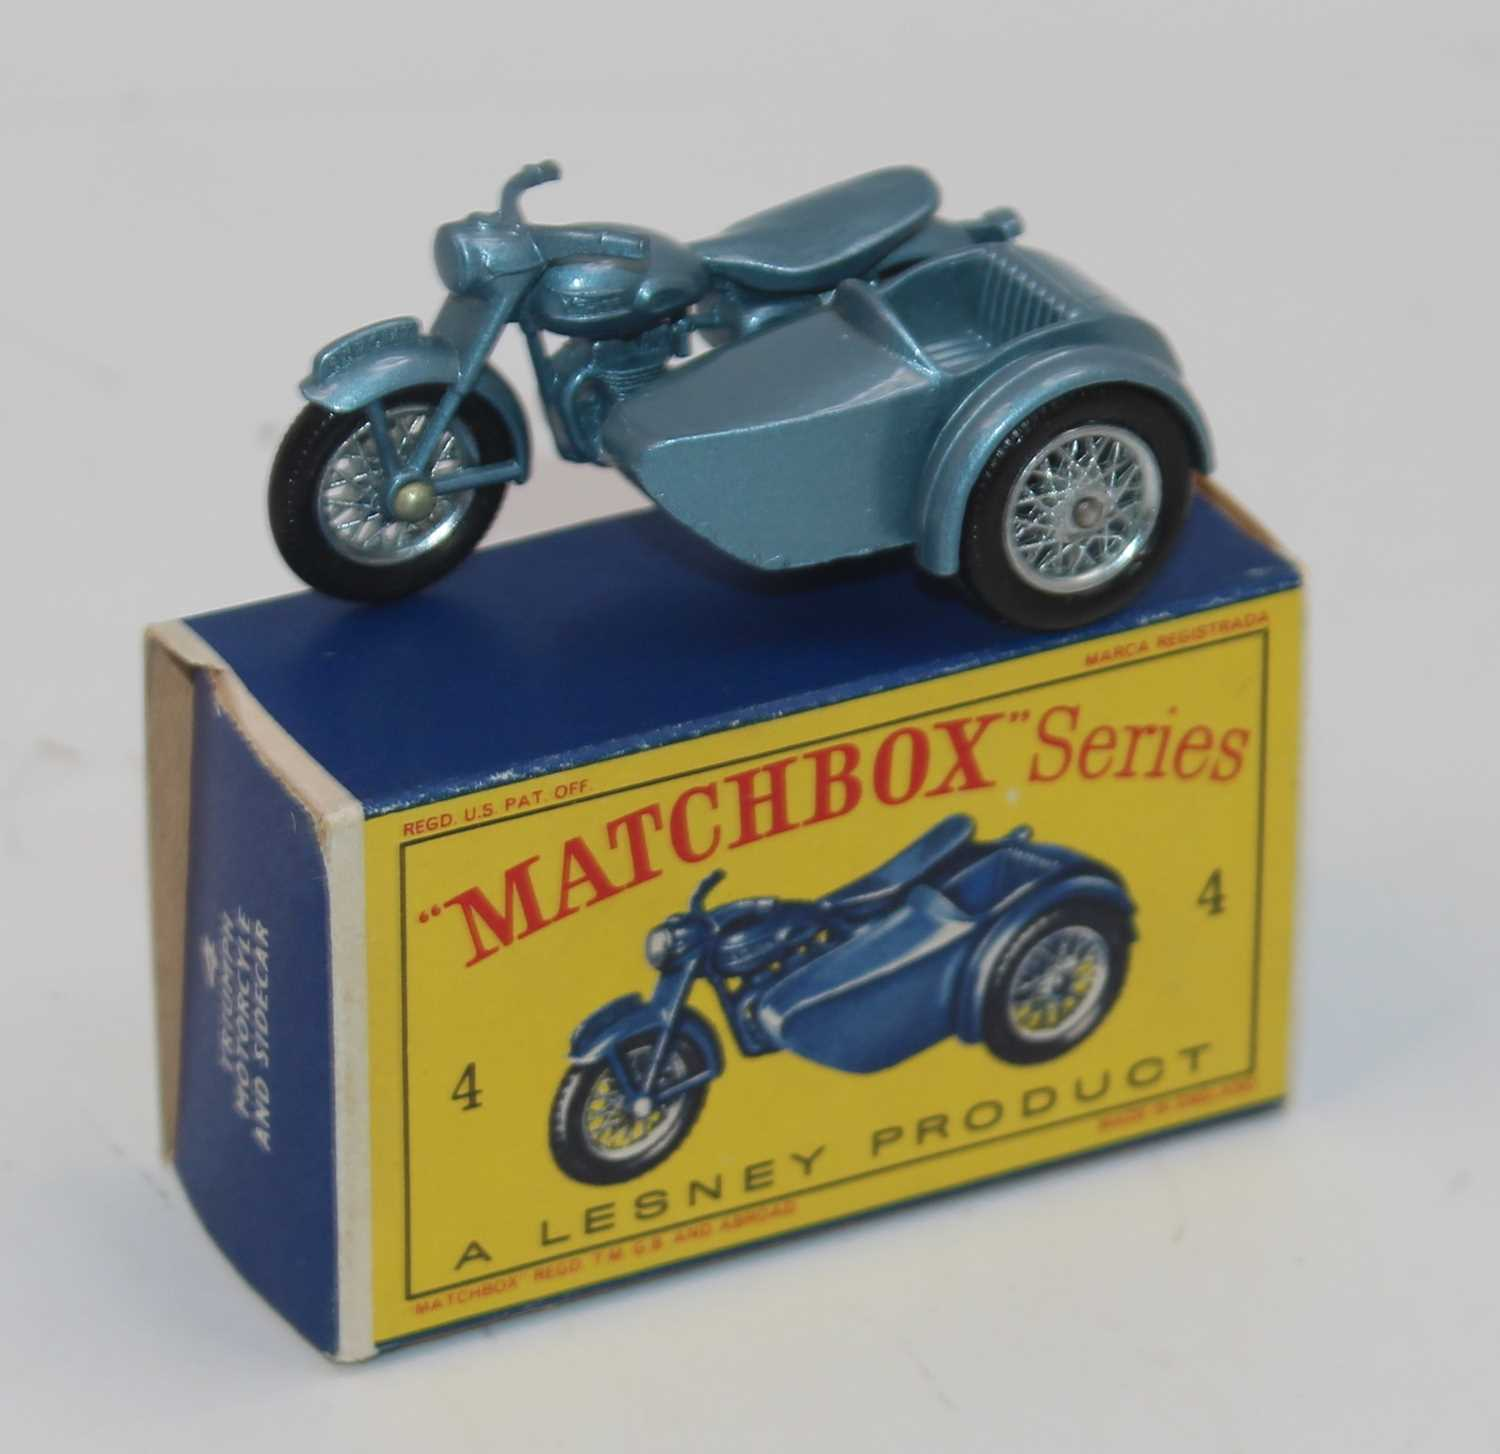 Matchbox 4c Triumph Motorcycle & Sidecar, metallic silver-blue body with wire wheels, mint in a